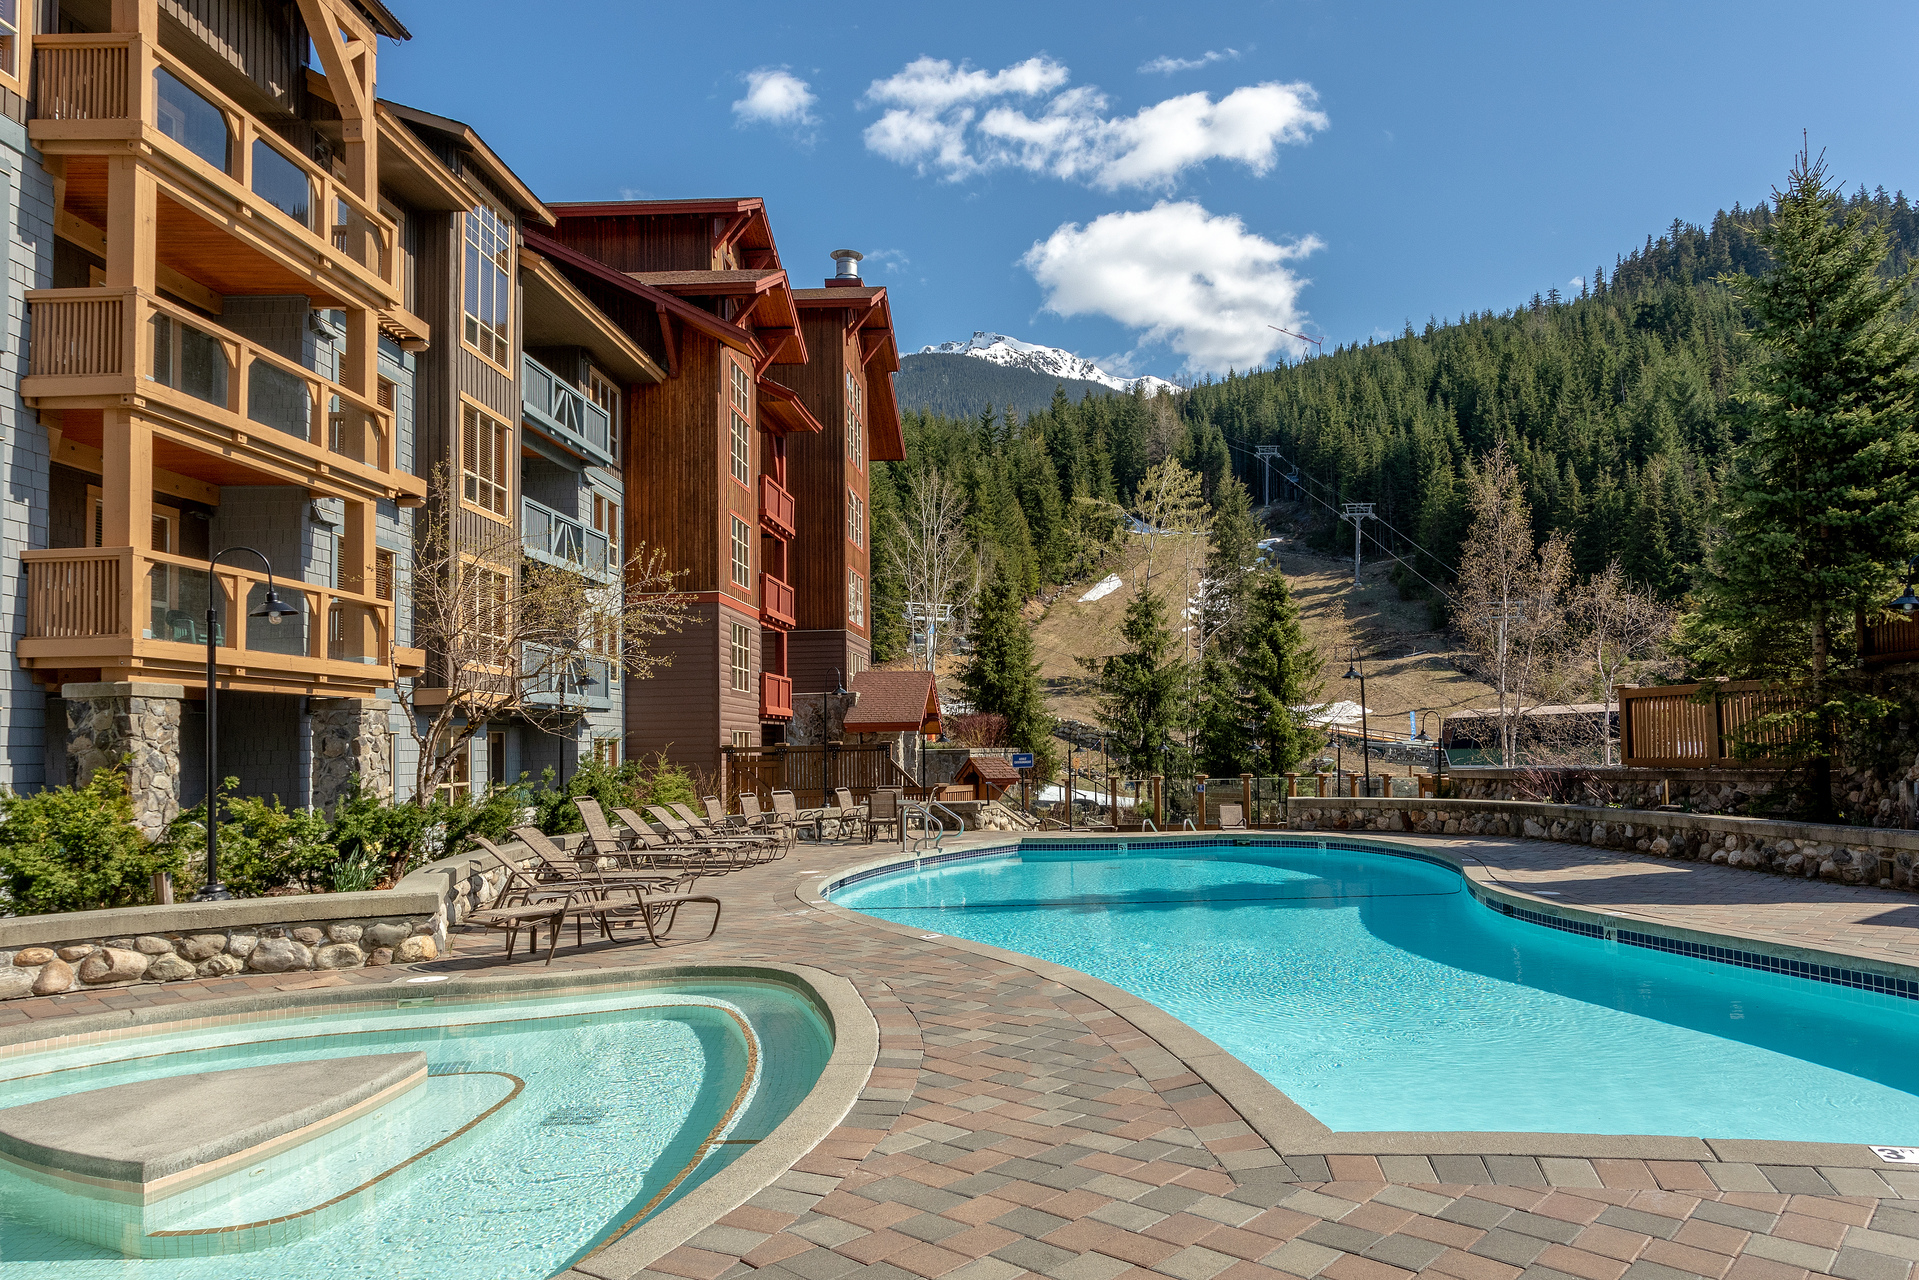 26 at 201C - 2036 London Lane, Whistler Creek, Whistler